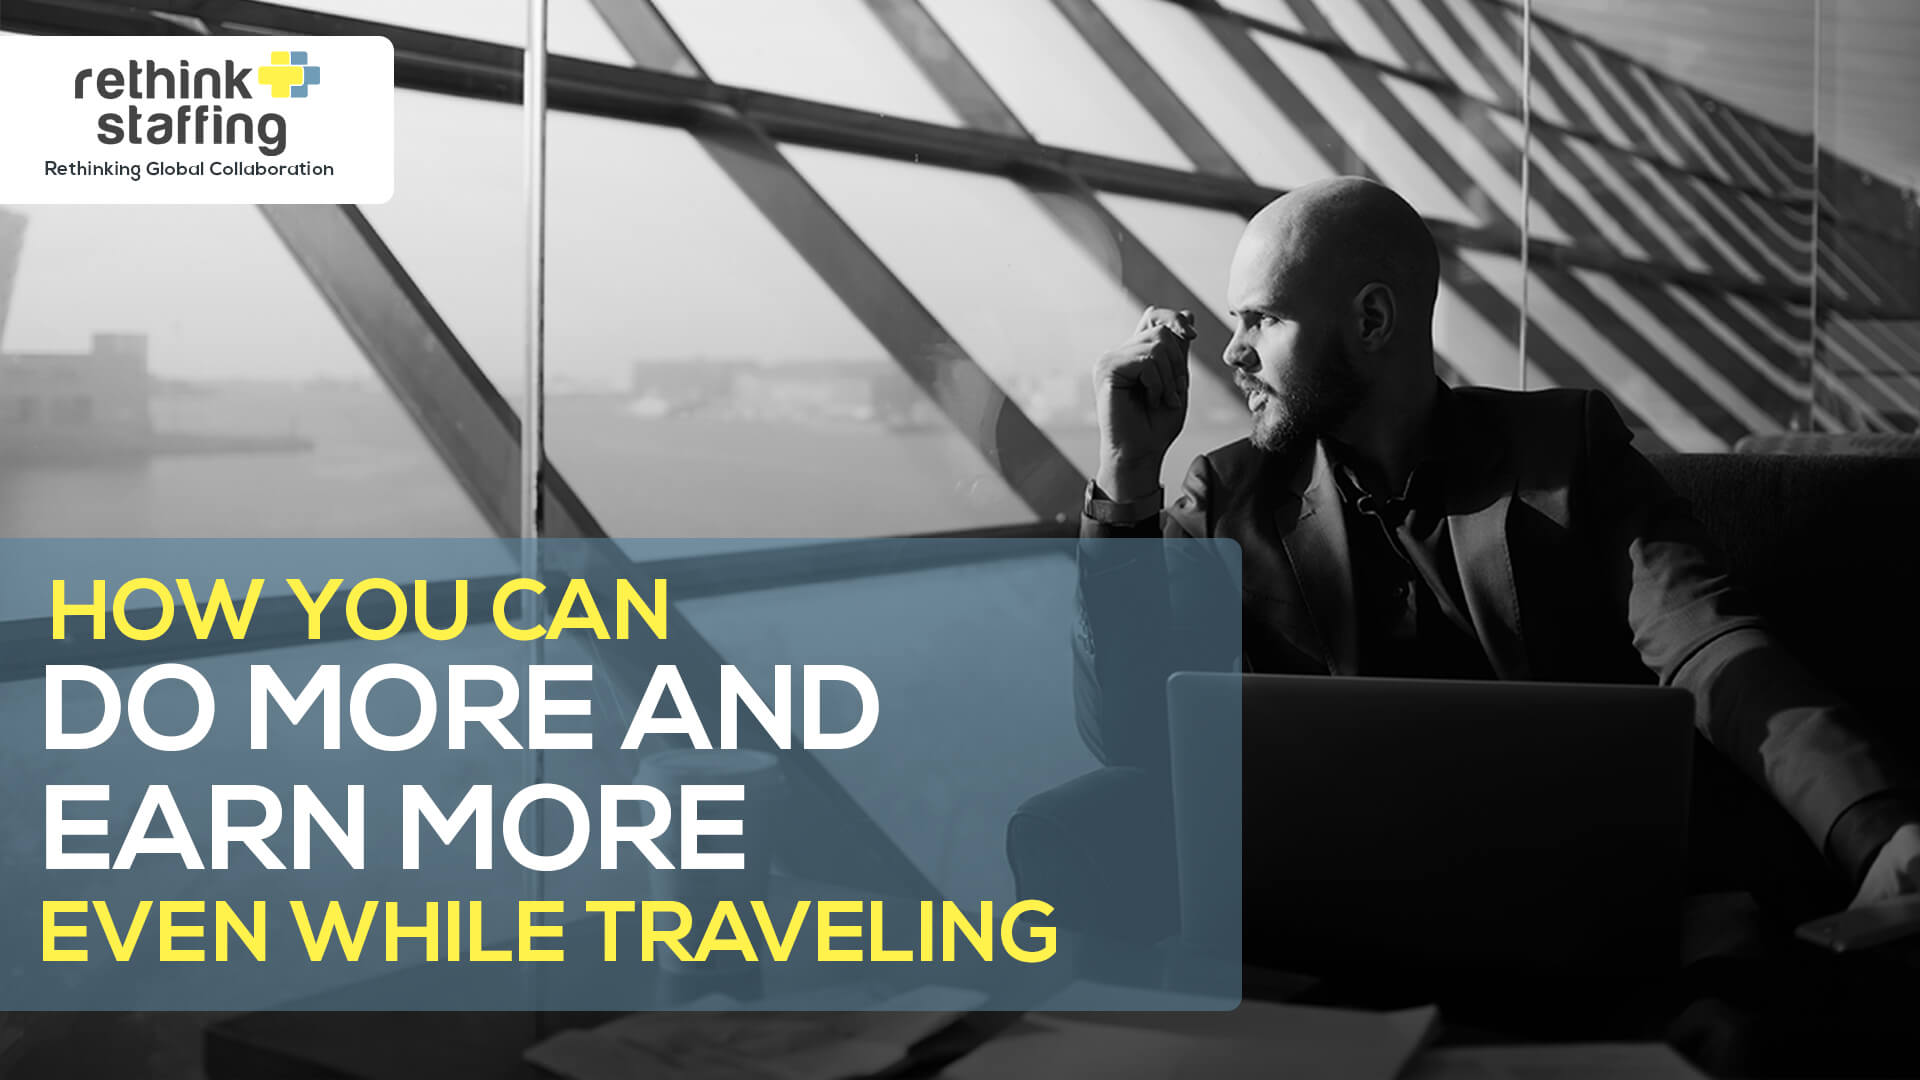 How You Can Do More and Earn More Even While Traveling